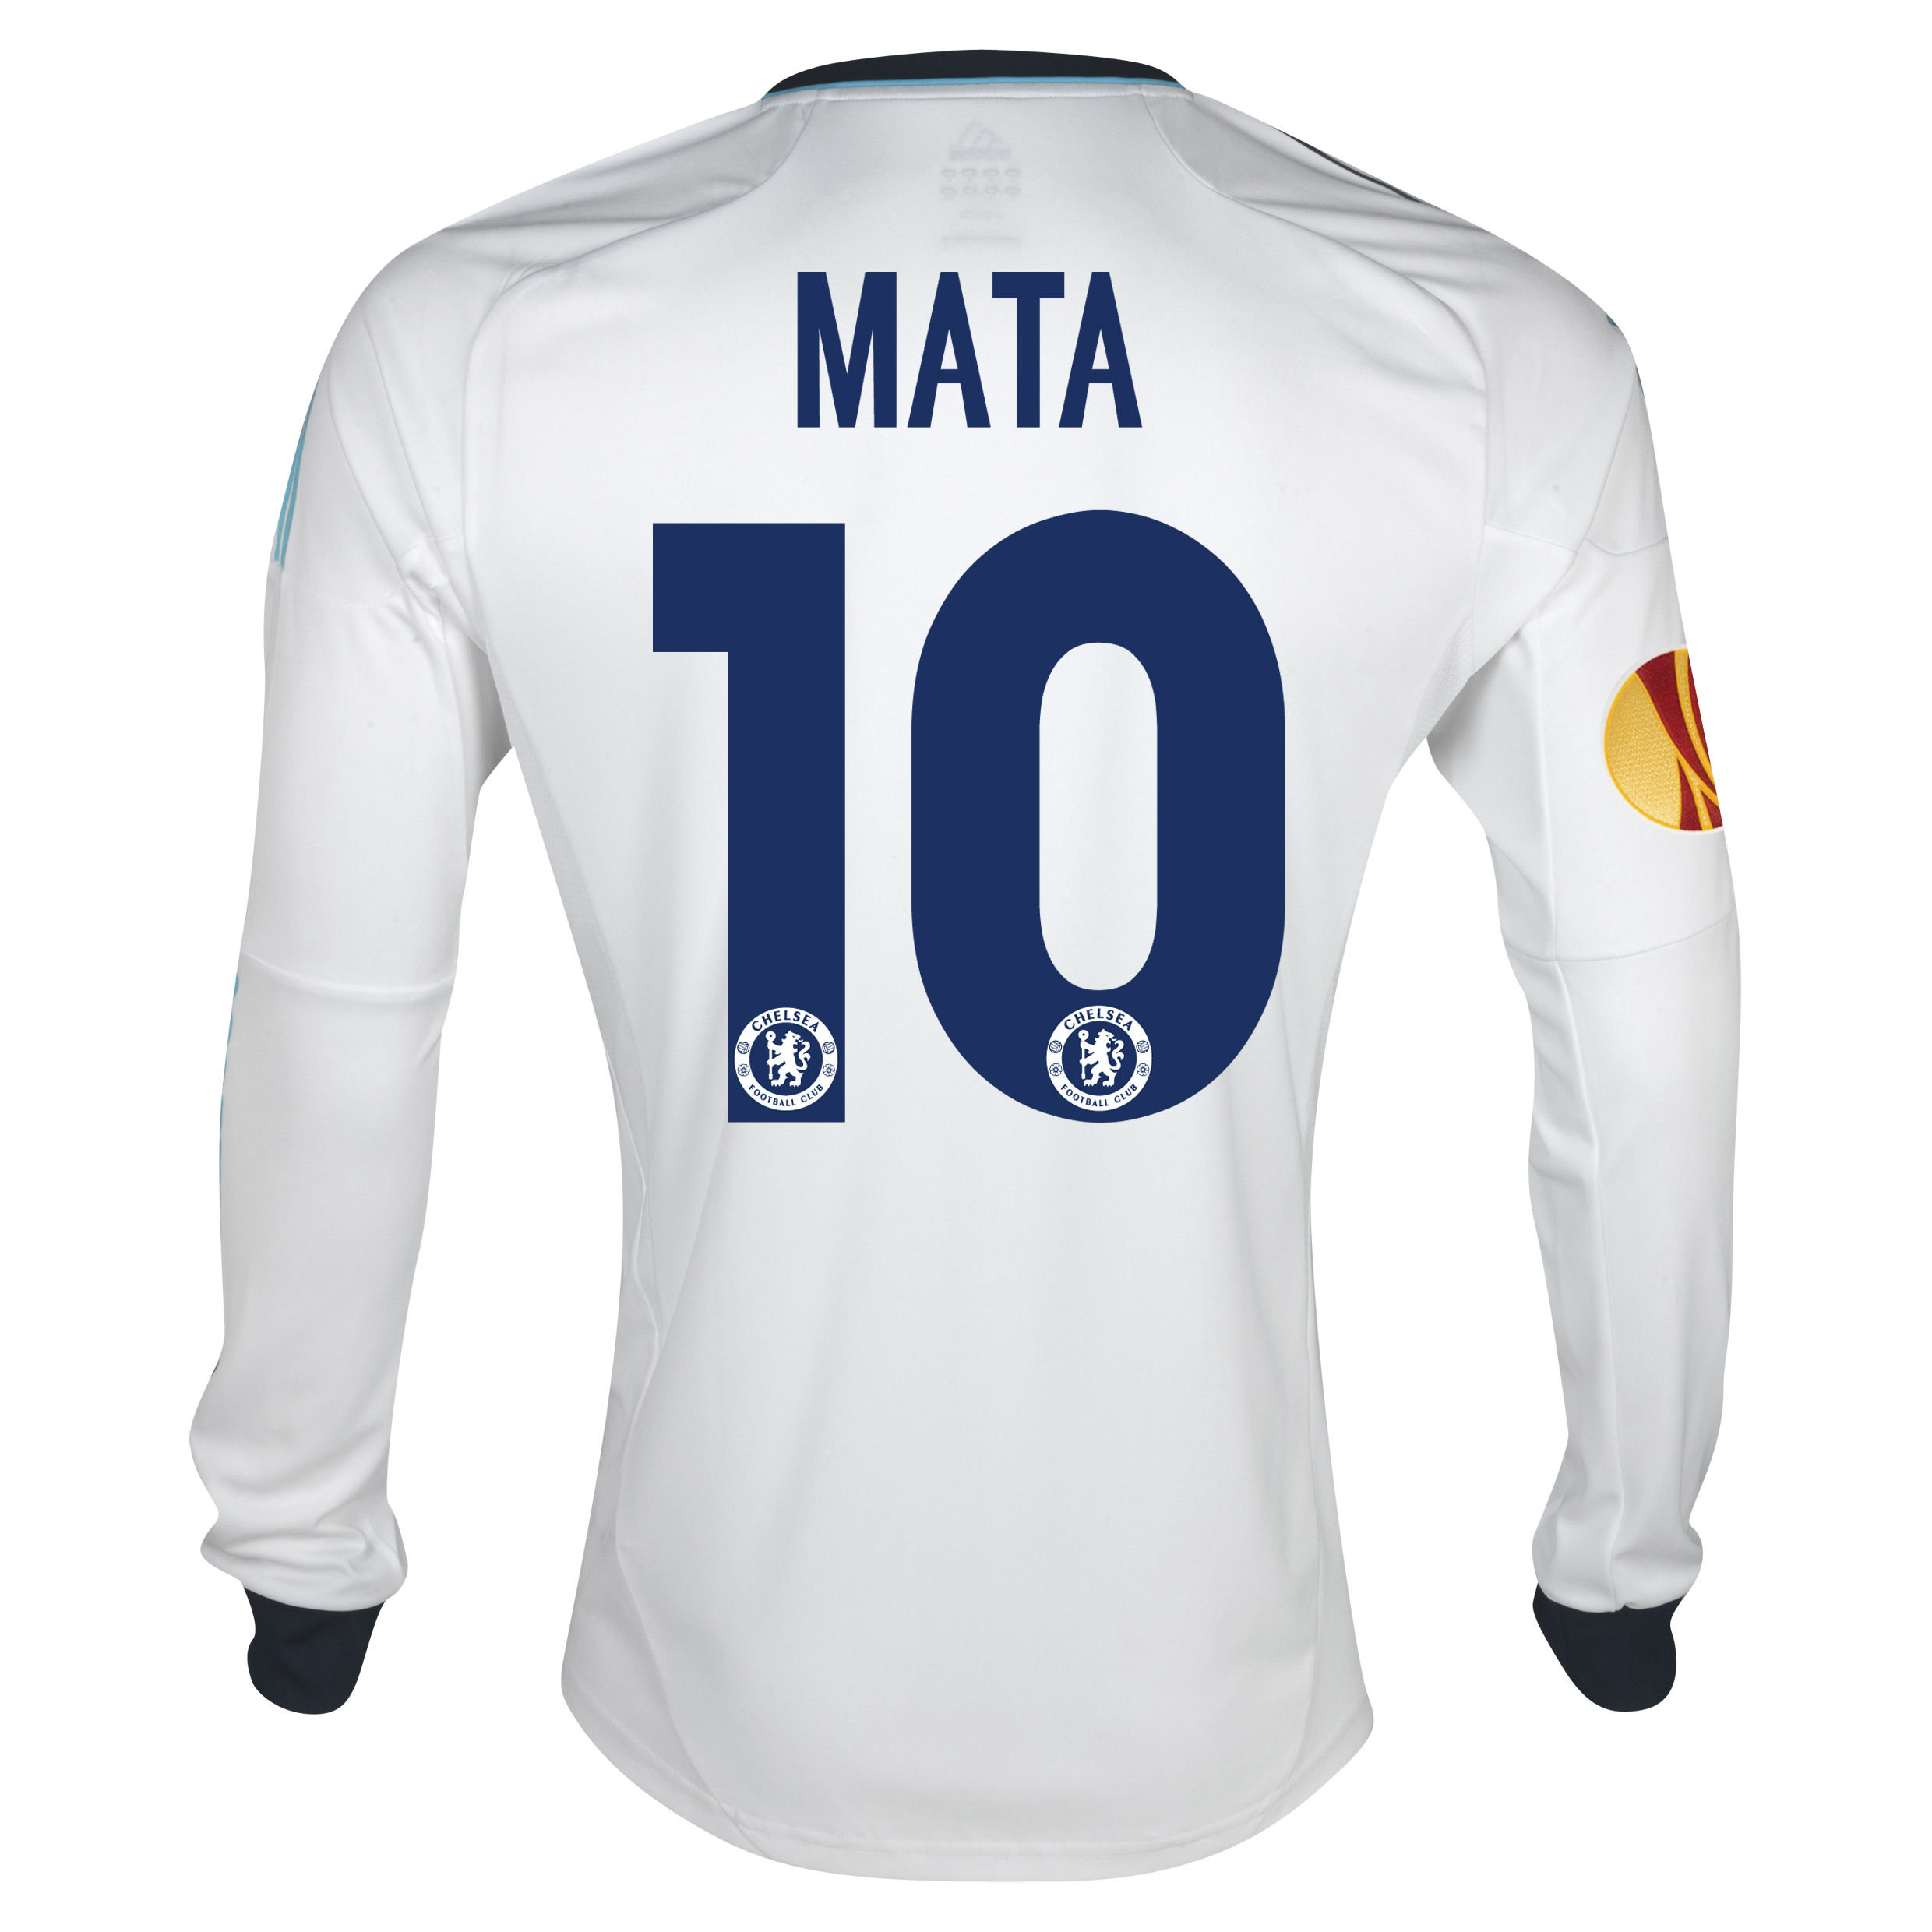 Chelsea UEFA Europa League Away Shirt 2012/13 - Long Sleeved with Mata 10 printing Including Europa Badge